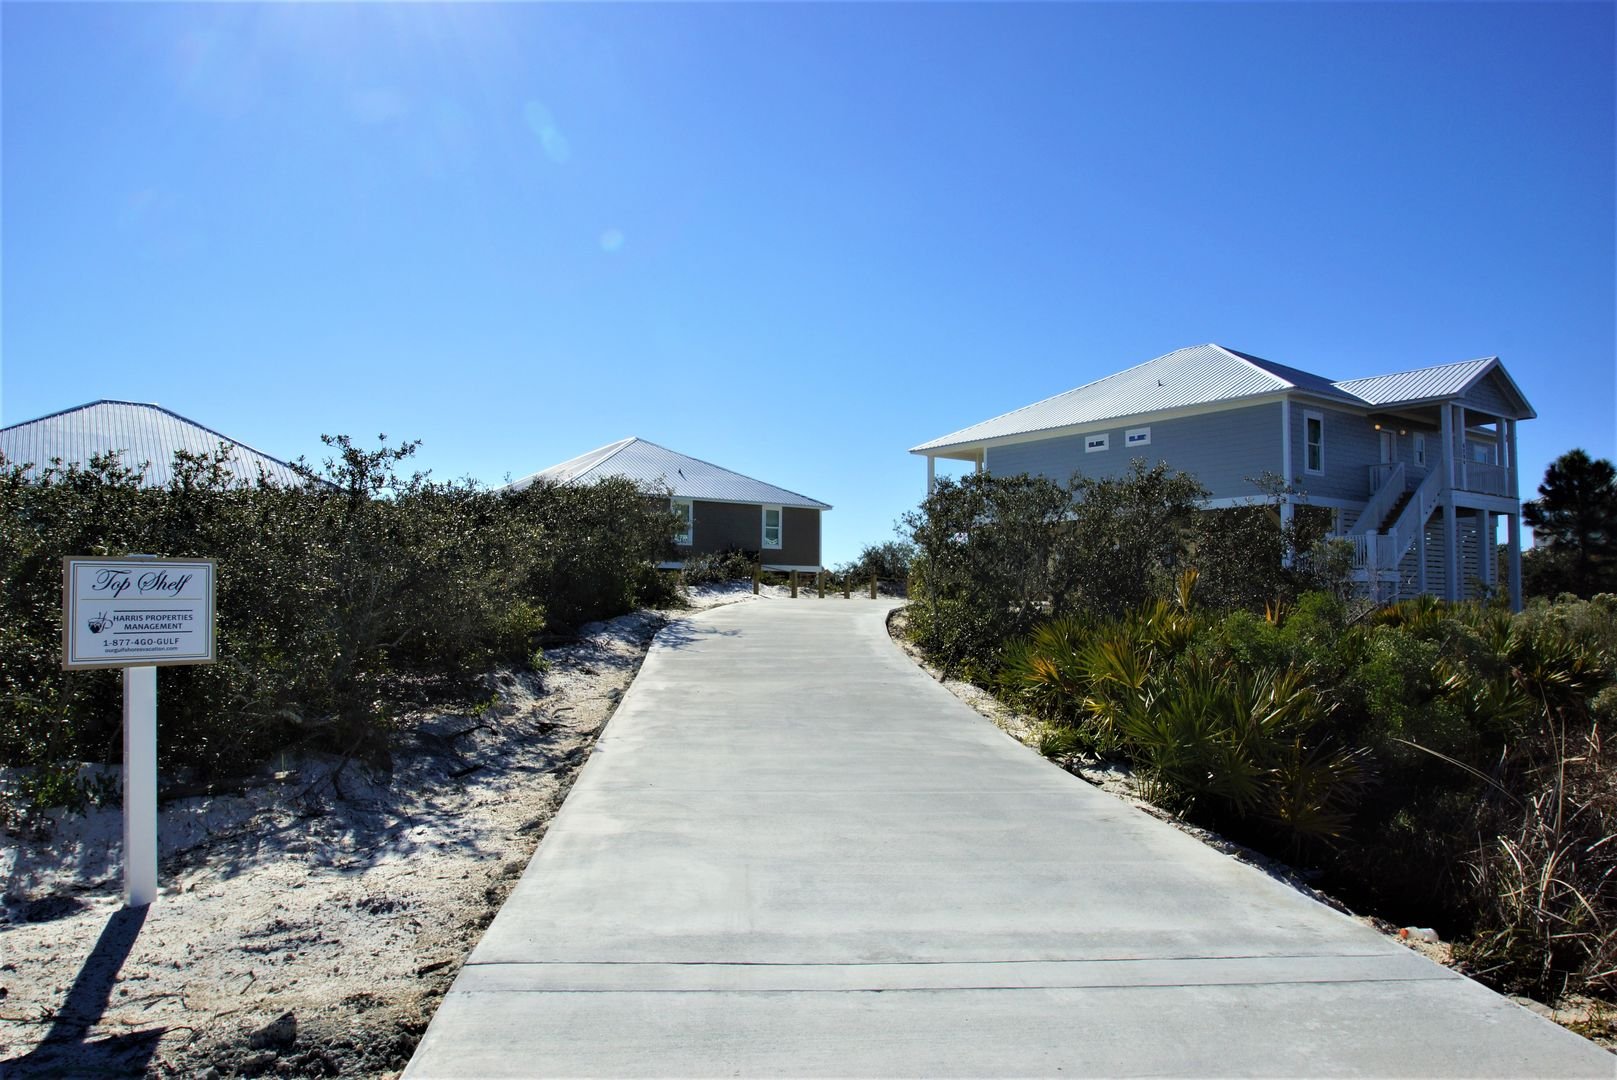 Entrance to this Vacation Home For Rent In Gulf Shores, Alabama.